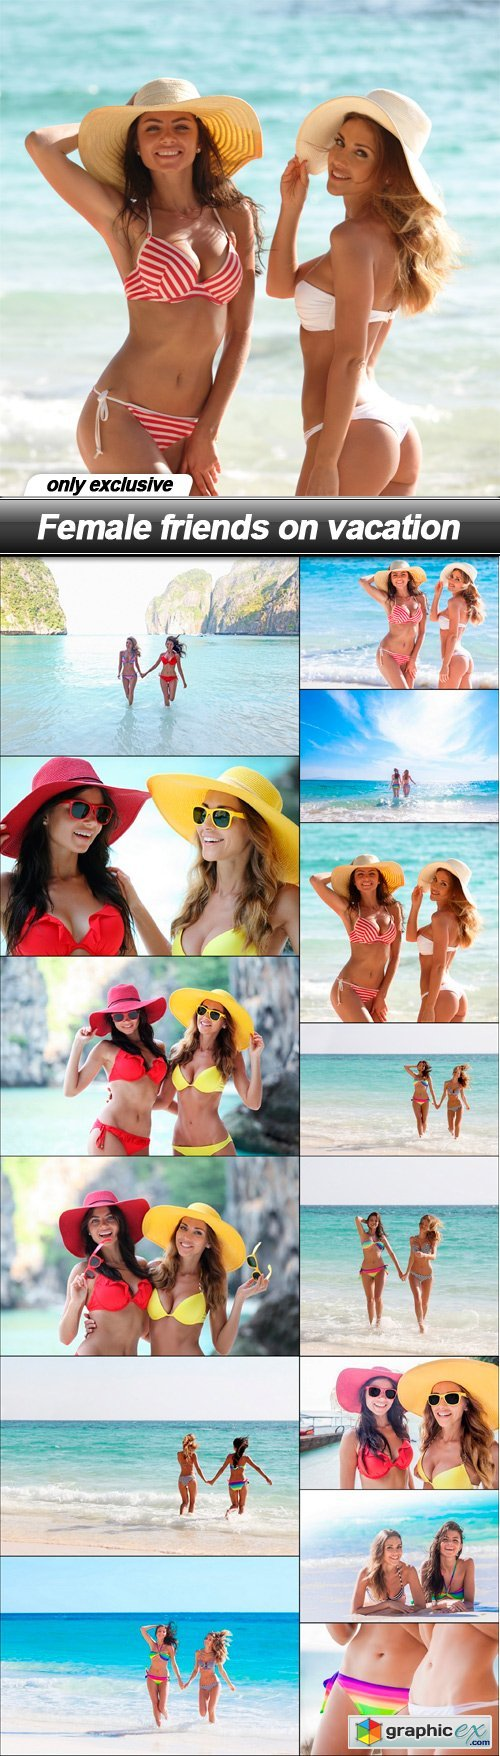 Female friends on vacation - 14 UHQ JPEG